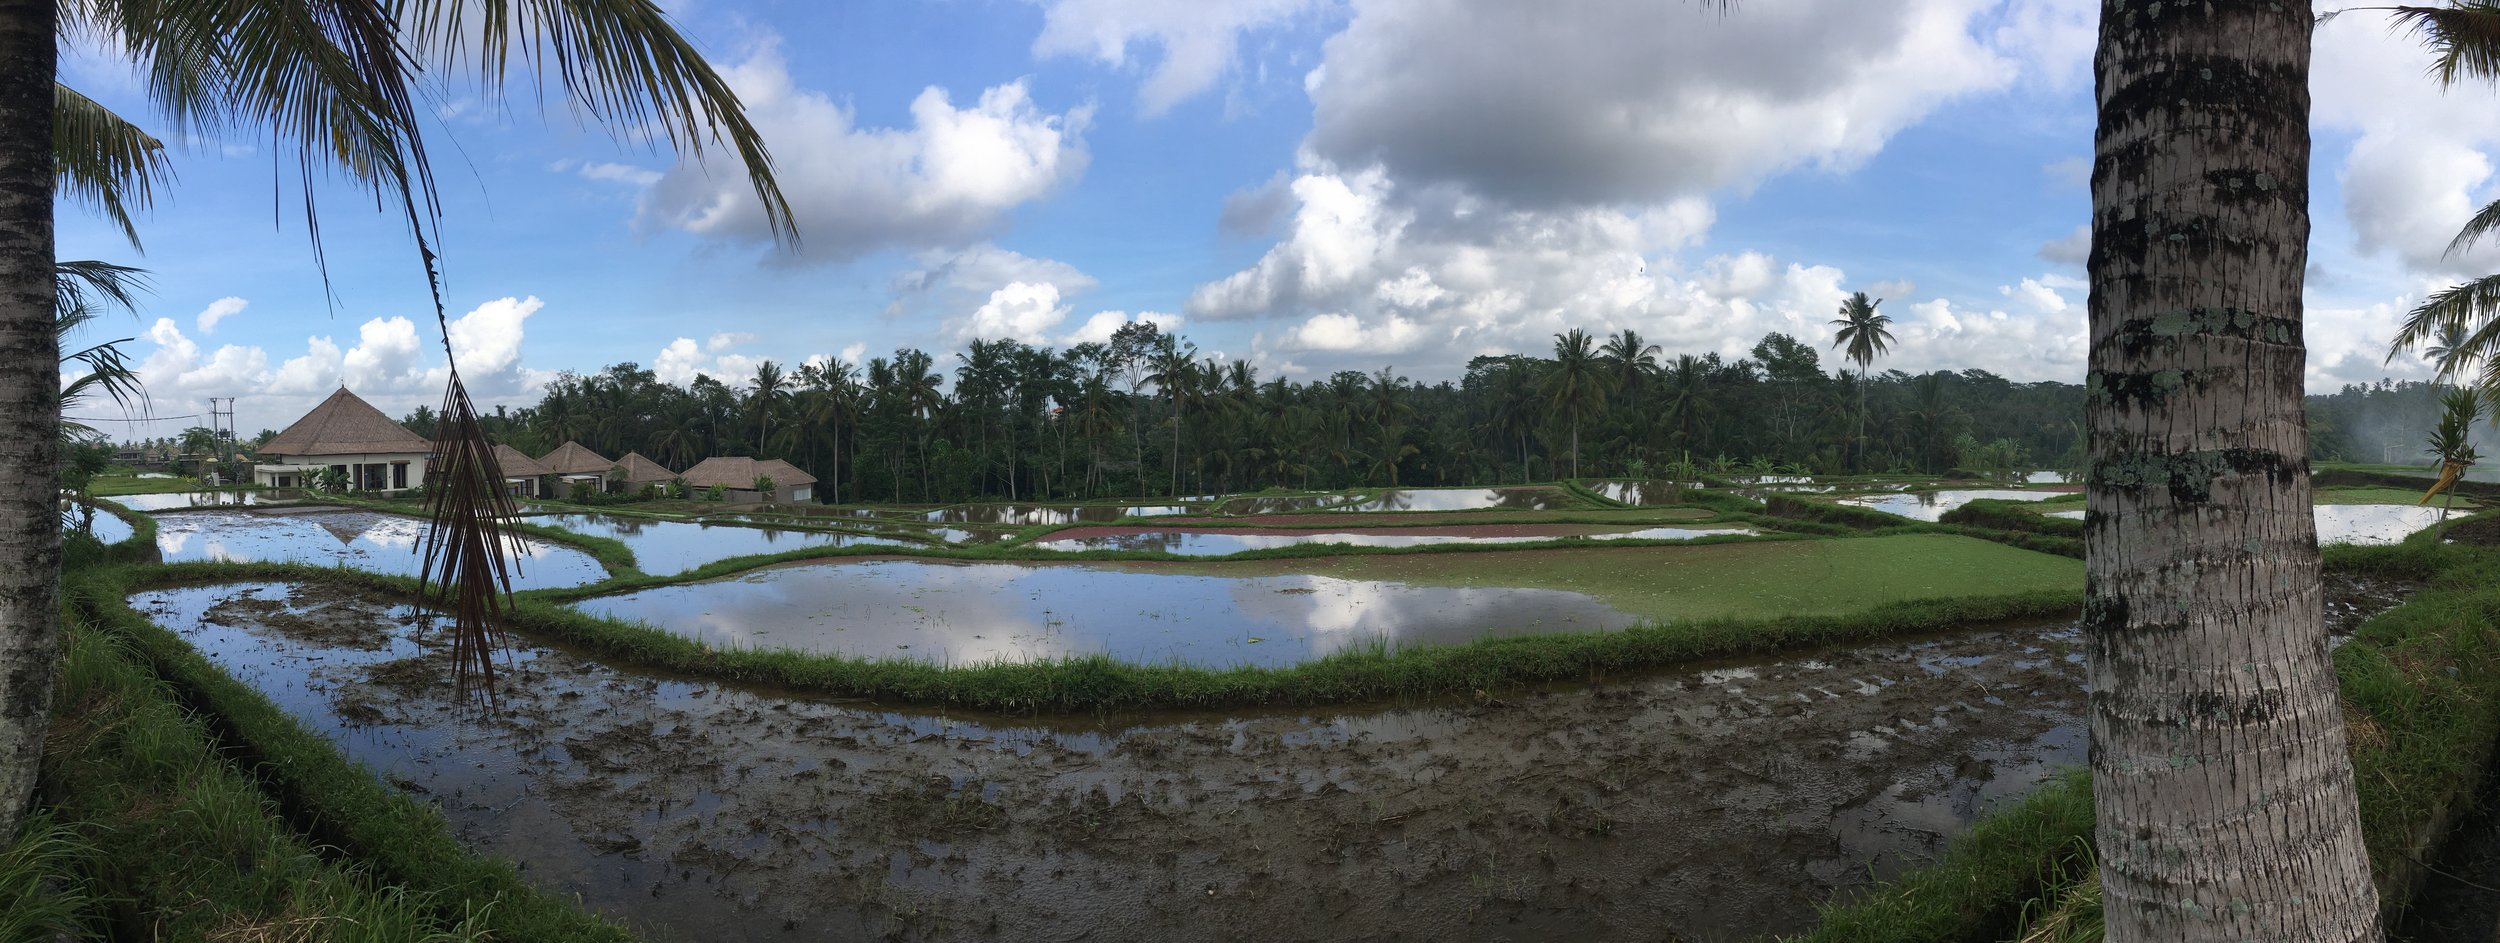 Panoramic of the rice fields we toured prior to our cooking class.